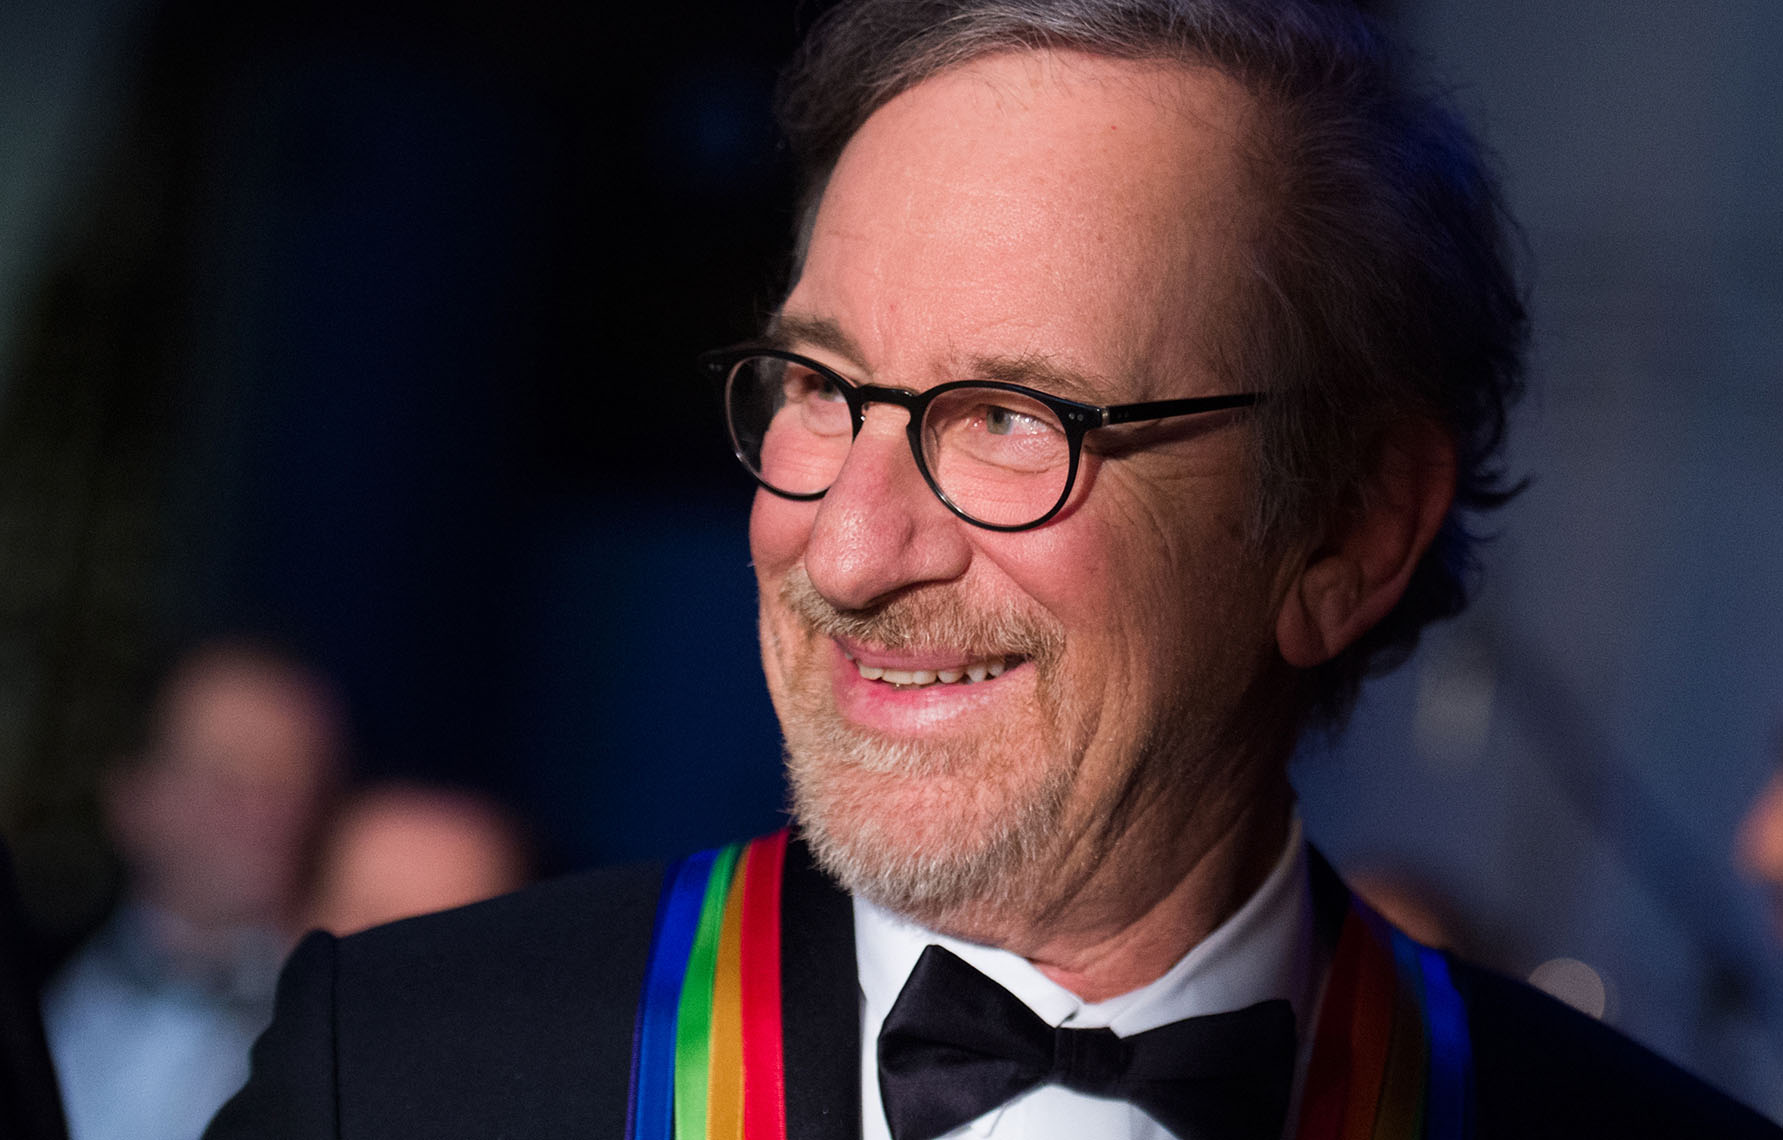 Steven Spielberg | Washington Photographer Aaron Clamage